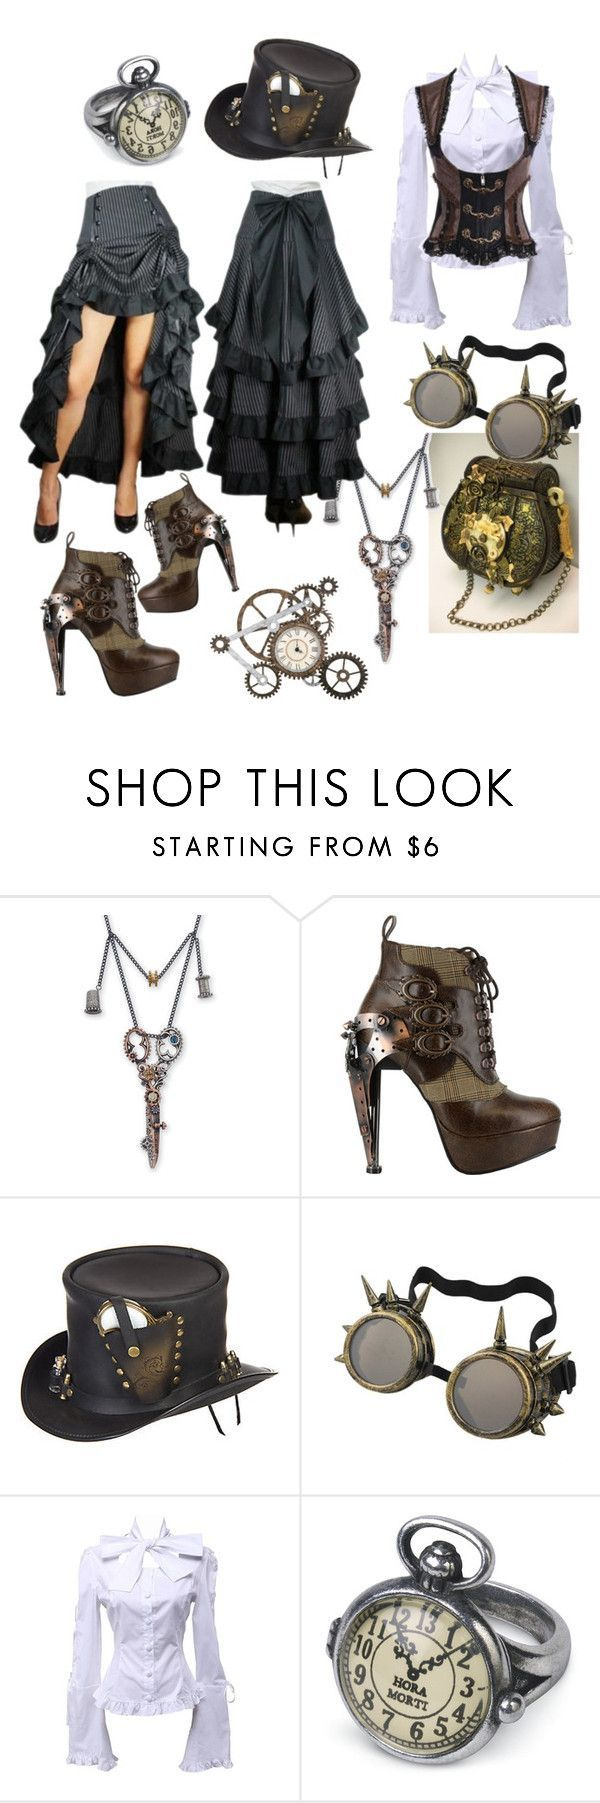 """""""Steampunk"""" by iidapollari ❤ liked on Polyvore featuring HADES and Overland Sheepskin Co."""